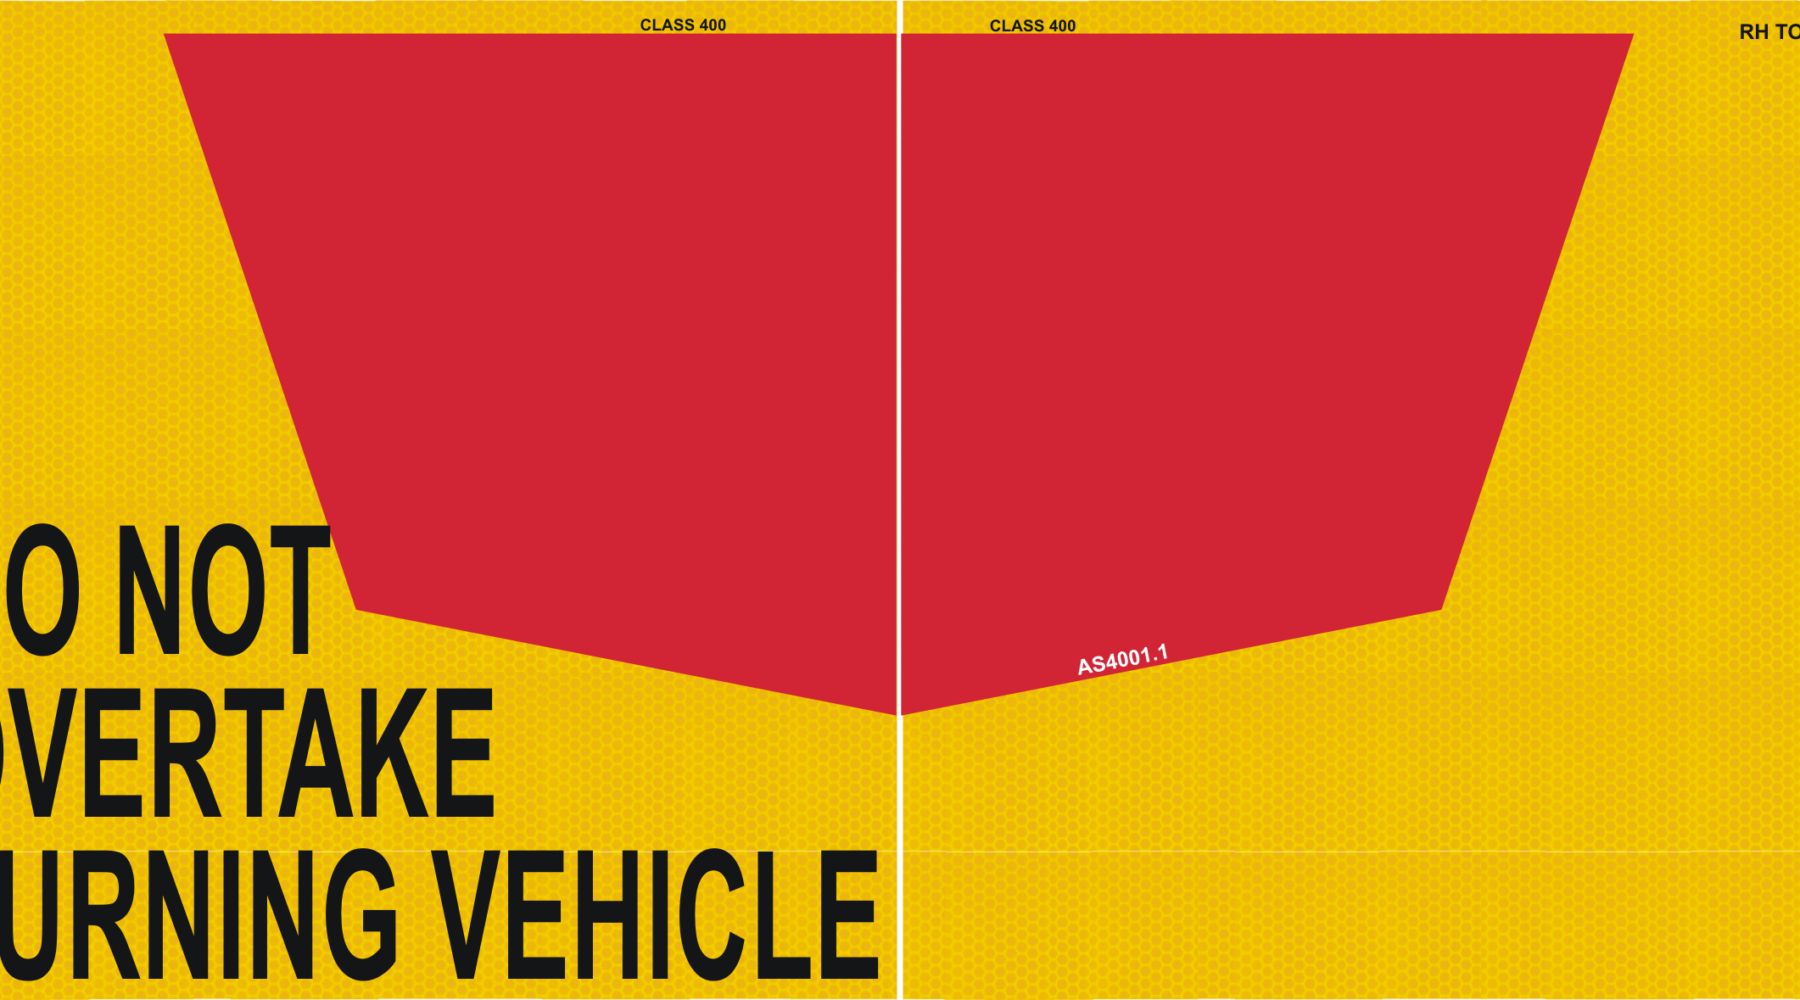 400mm NSW markers - Do not overtake turning vehicle signs